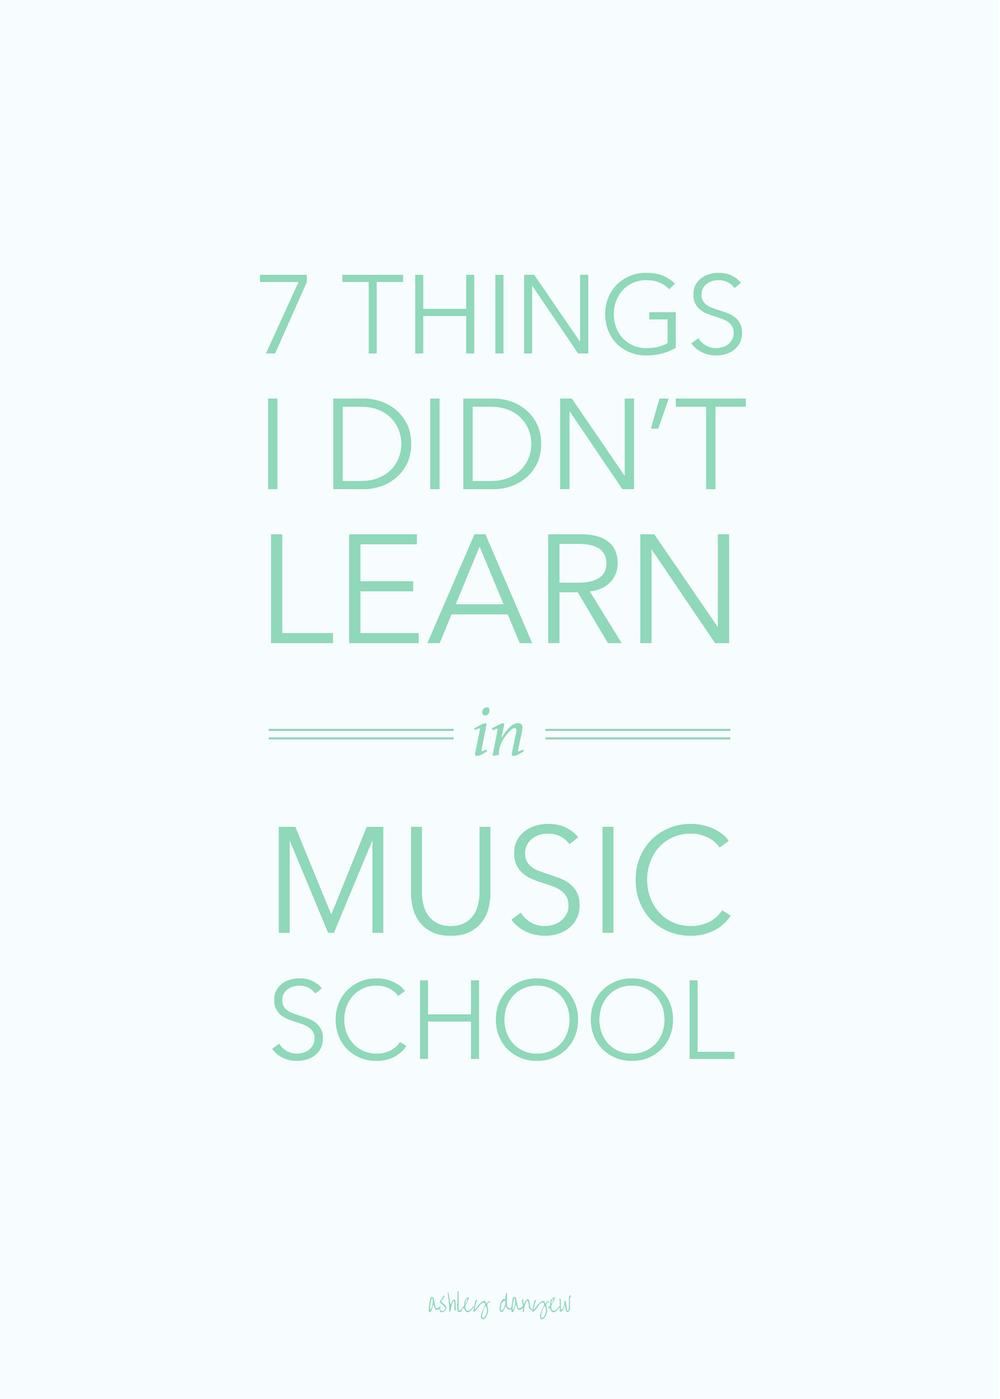 Copy of 7 Things I Didn't Learn in Music School